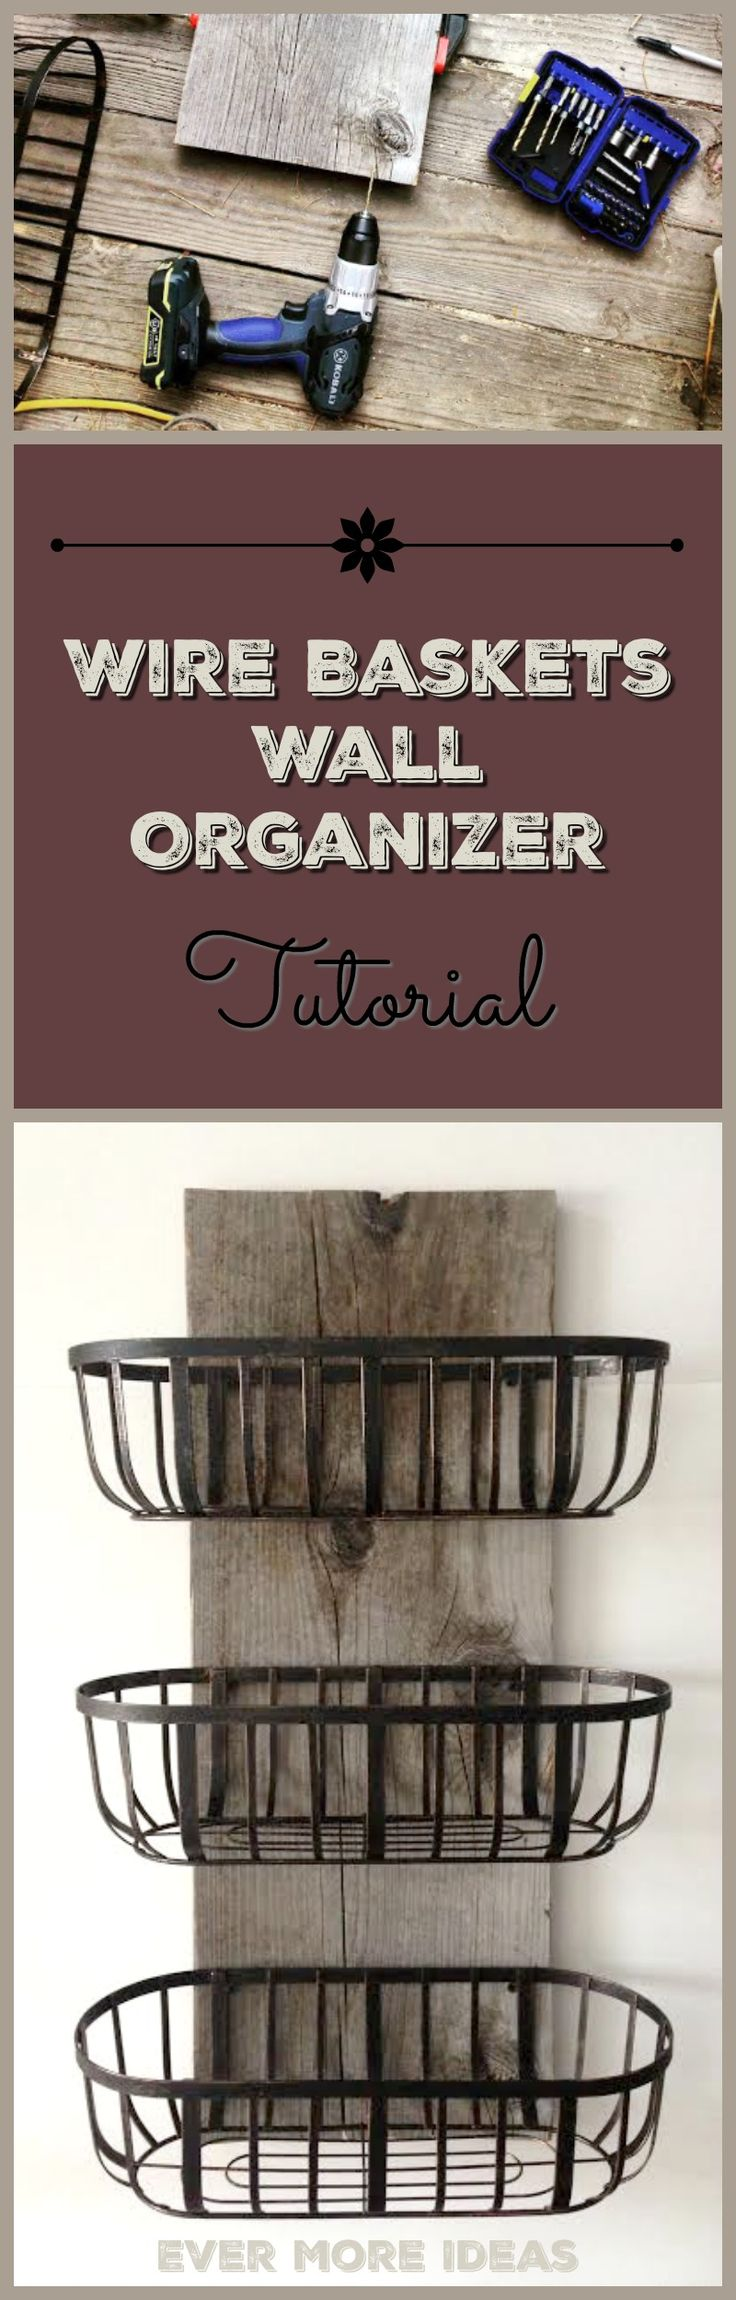 Rustic wood and wire baskets organizer. I made this for our kitchen and now it holds all our dishtowels and handtowels. Cheap and easy country farmhouse decor. Could also use in a farmhouse or rustic style bathroom.